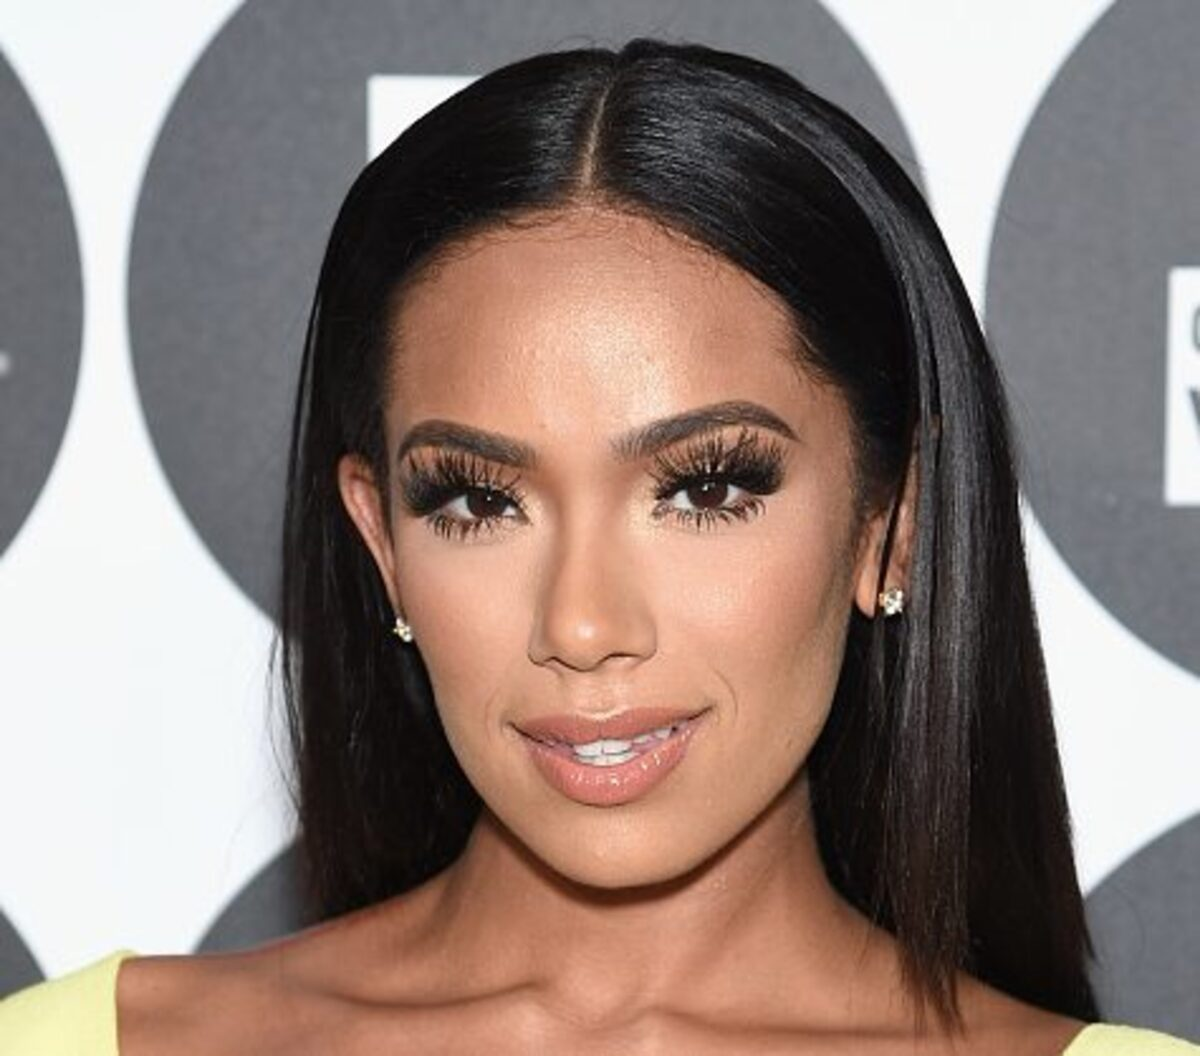 Erica Mena Shares Her Fitness Journey With Fans – See The Pics And Video